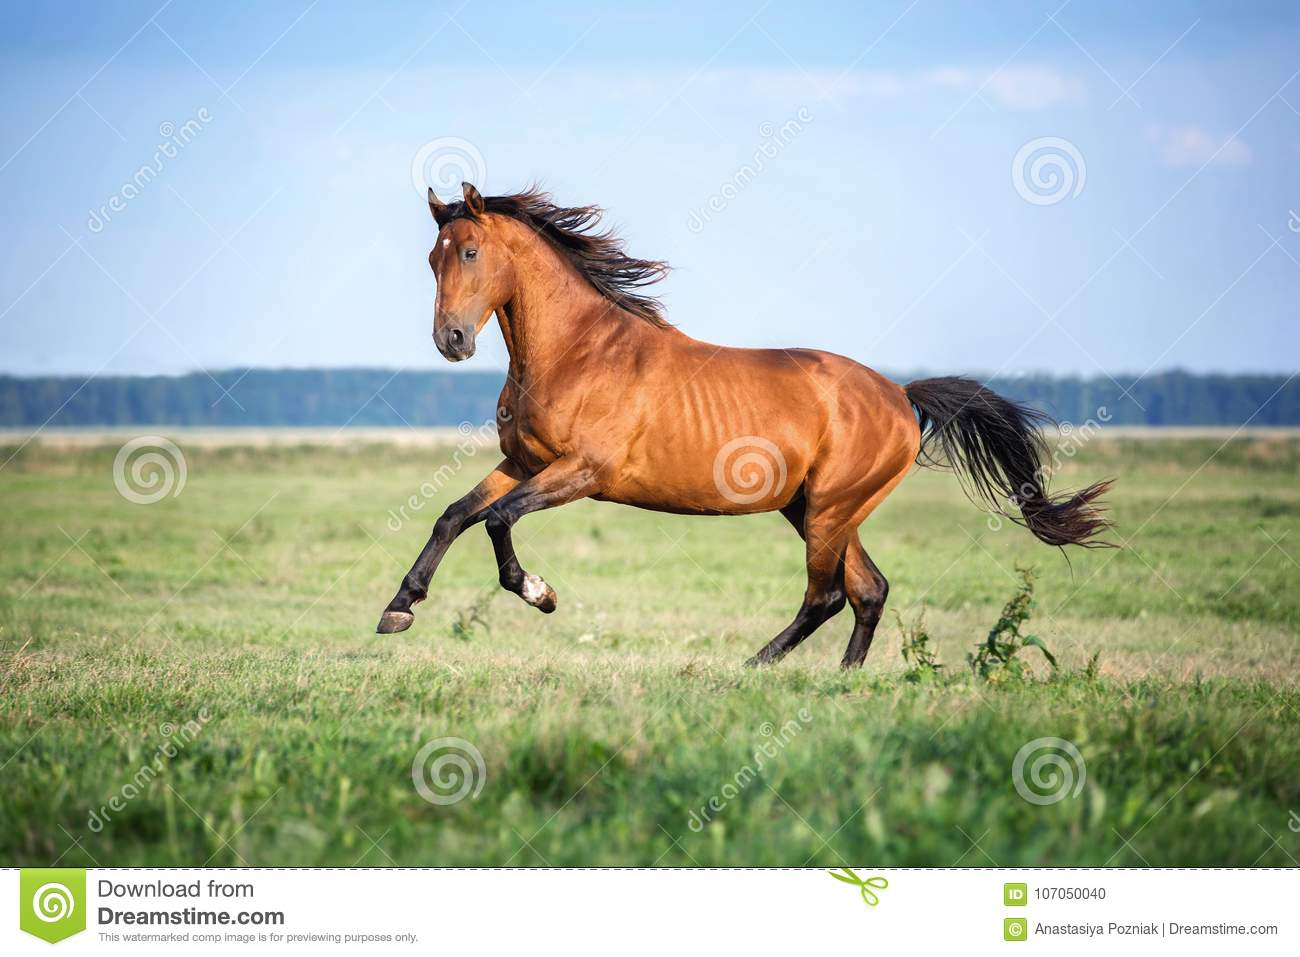 Horse Running Free On The Pasture Stock Photo Image Of Grass Portrait 107050040